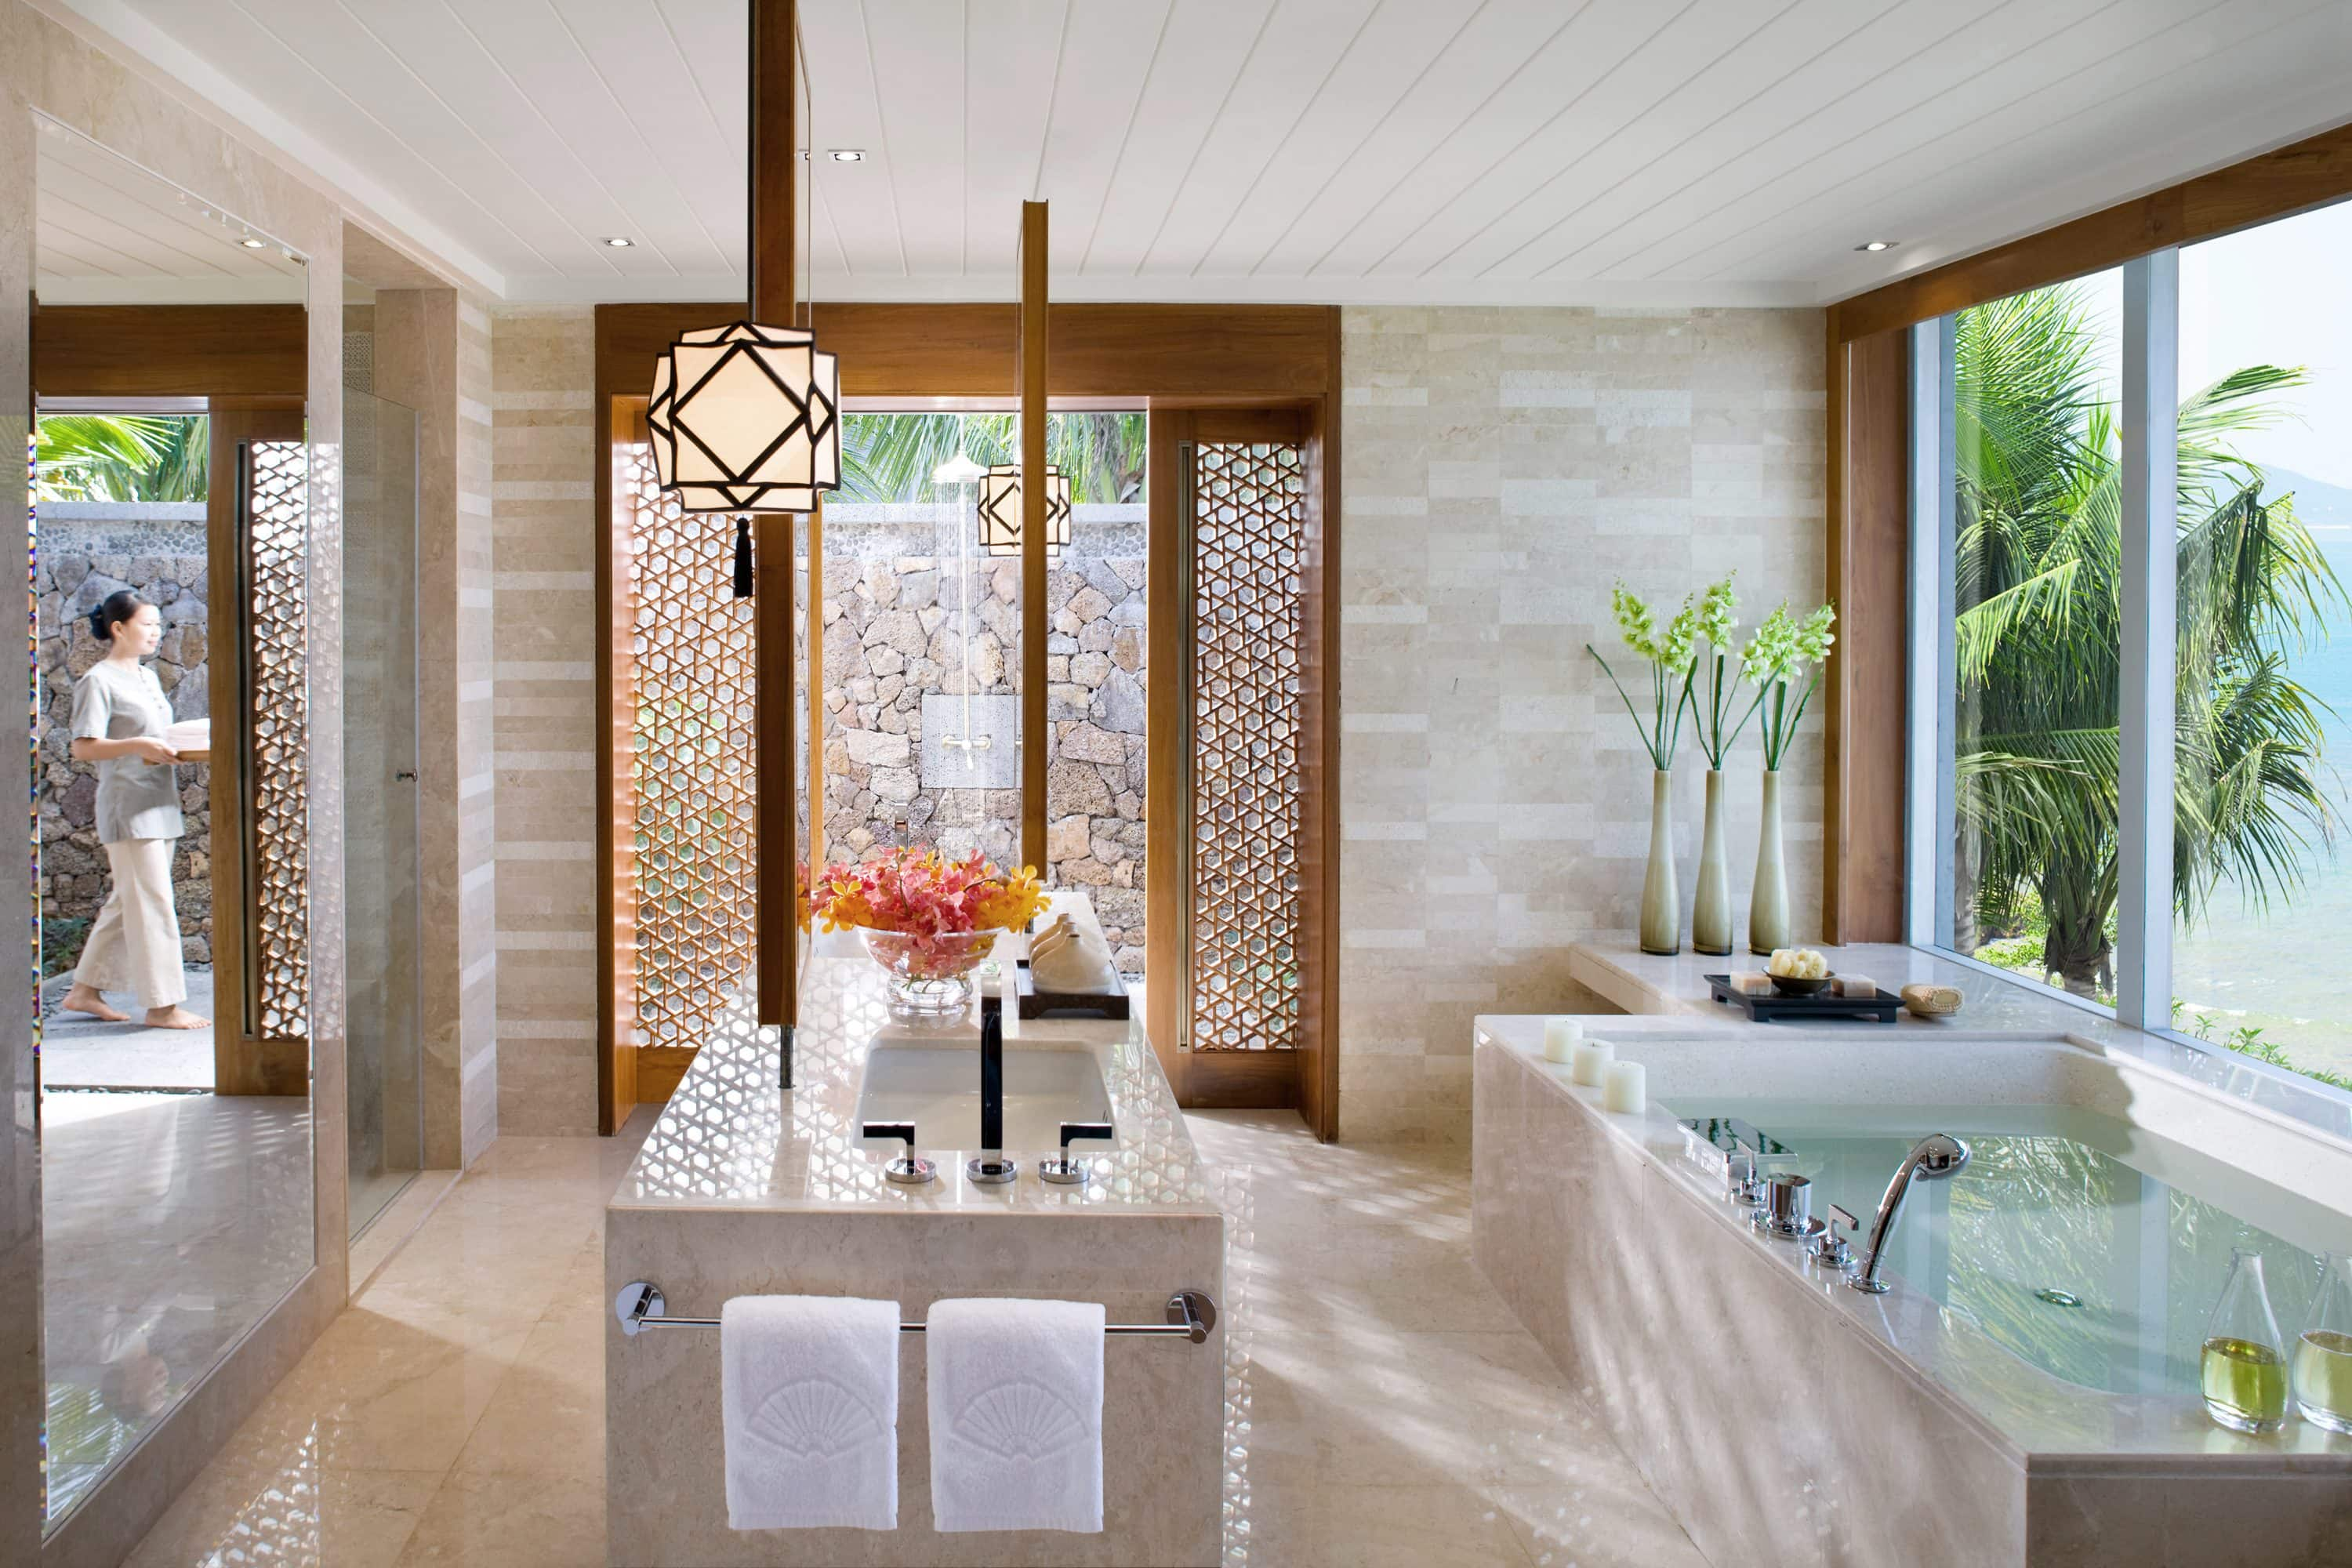 Pool villa bathroom at Mandarin Oriental, Sanya